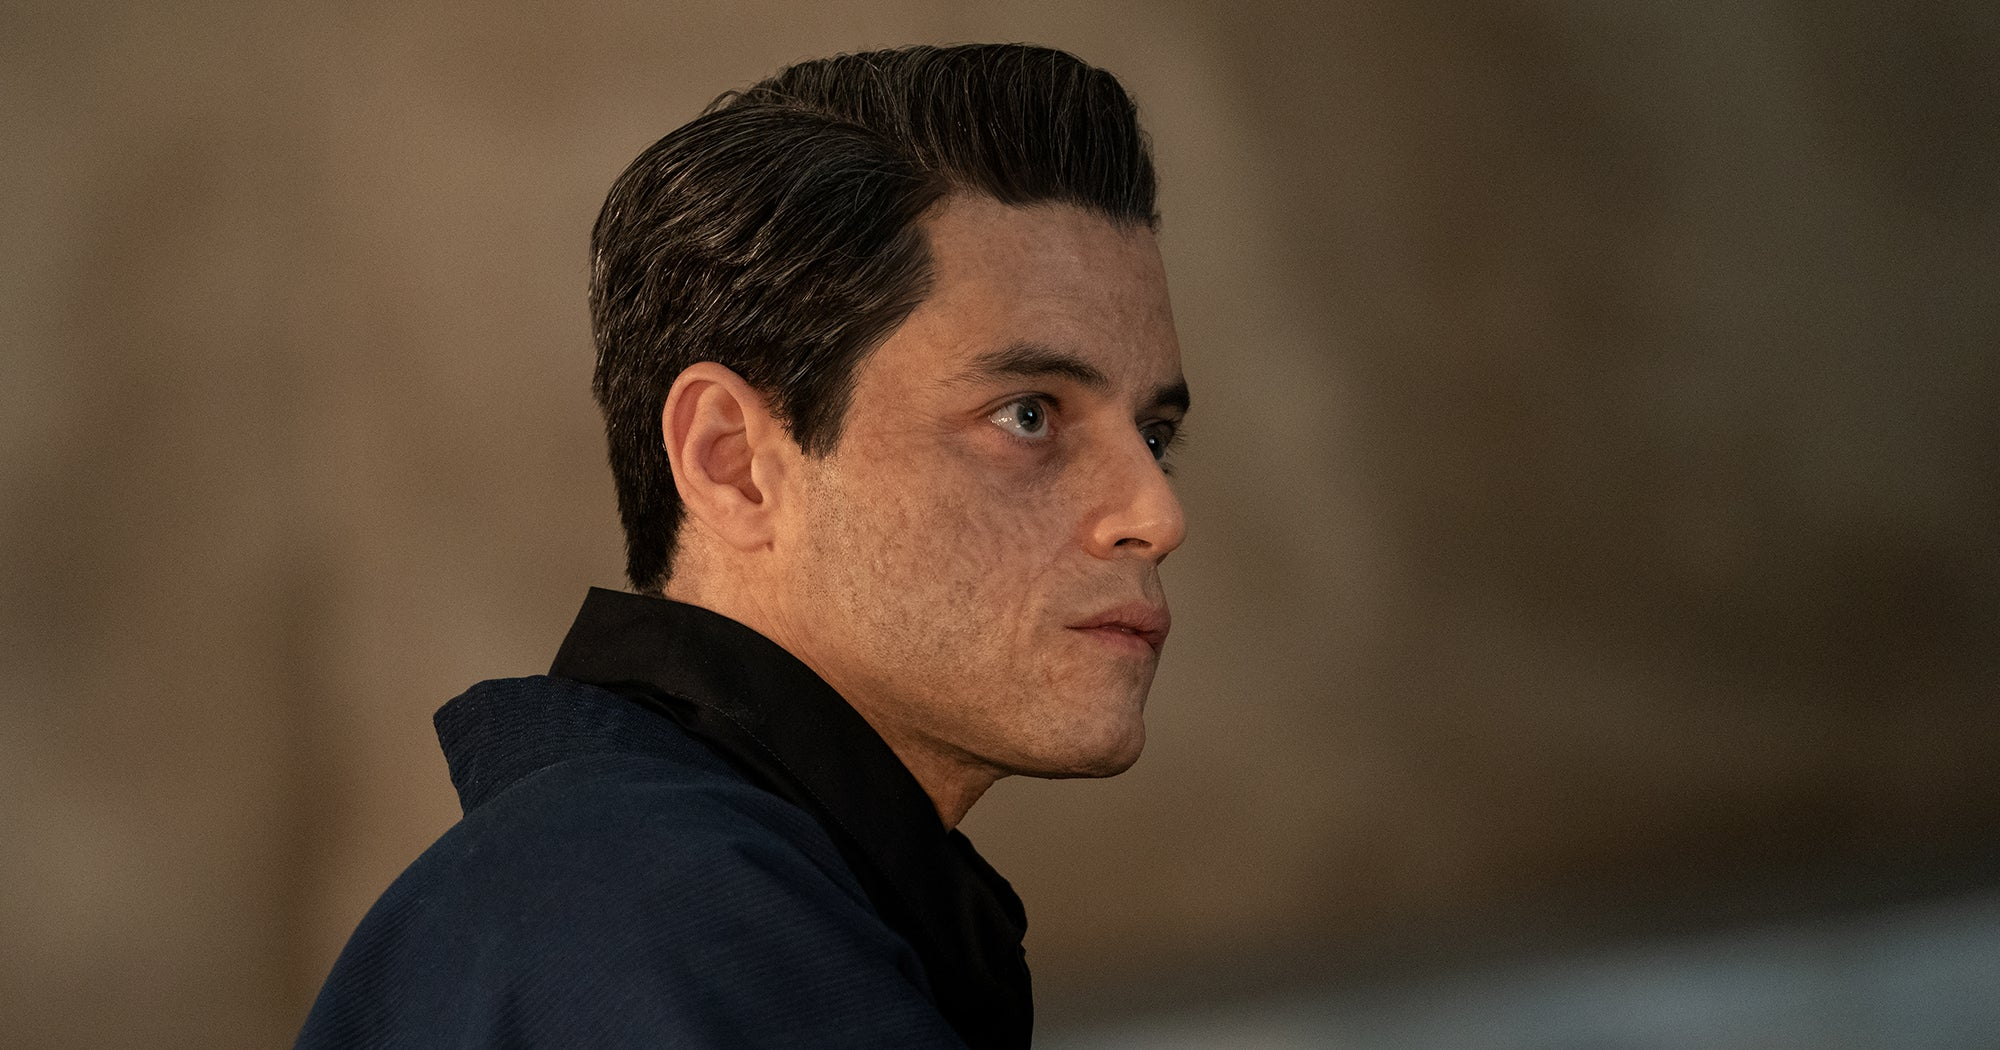 James Bond Is Back In New Trailer With Rami Malek